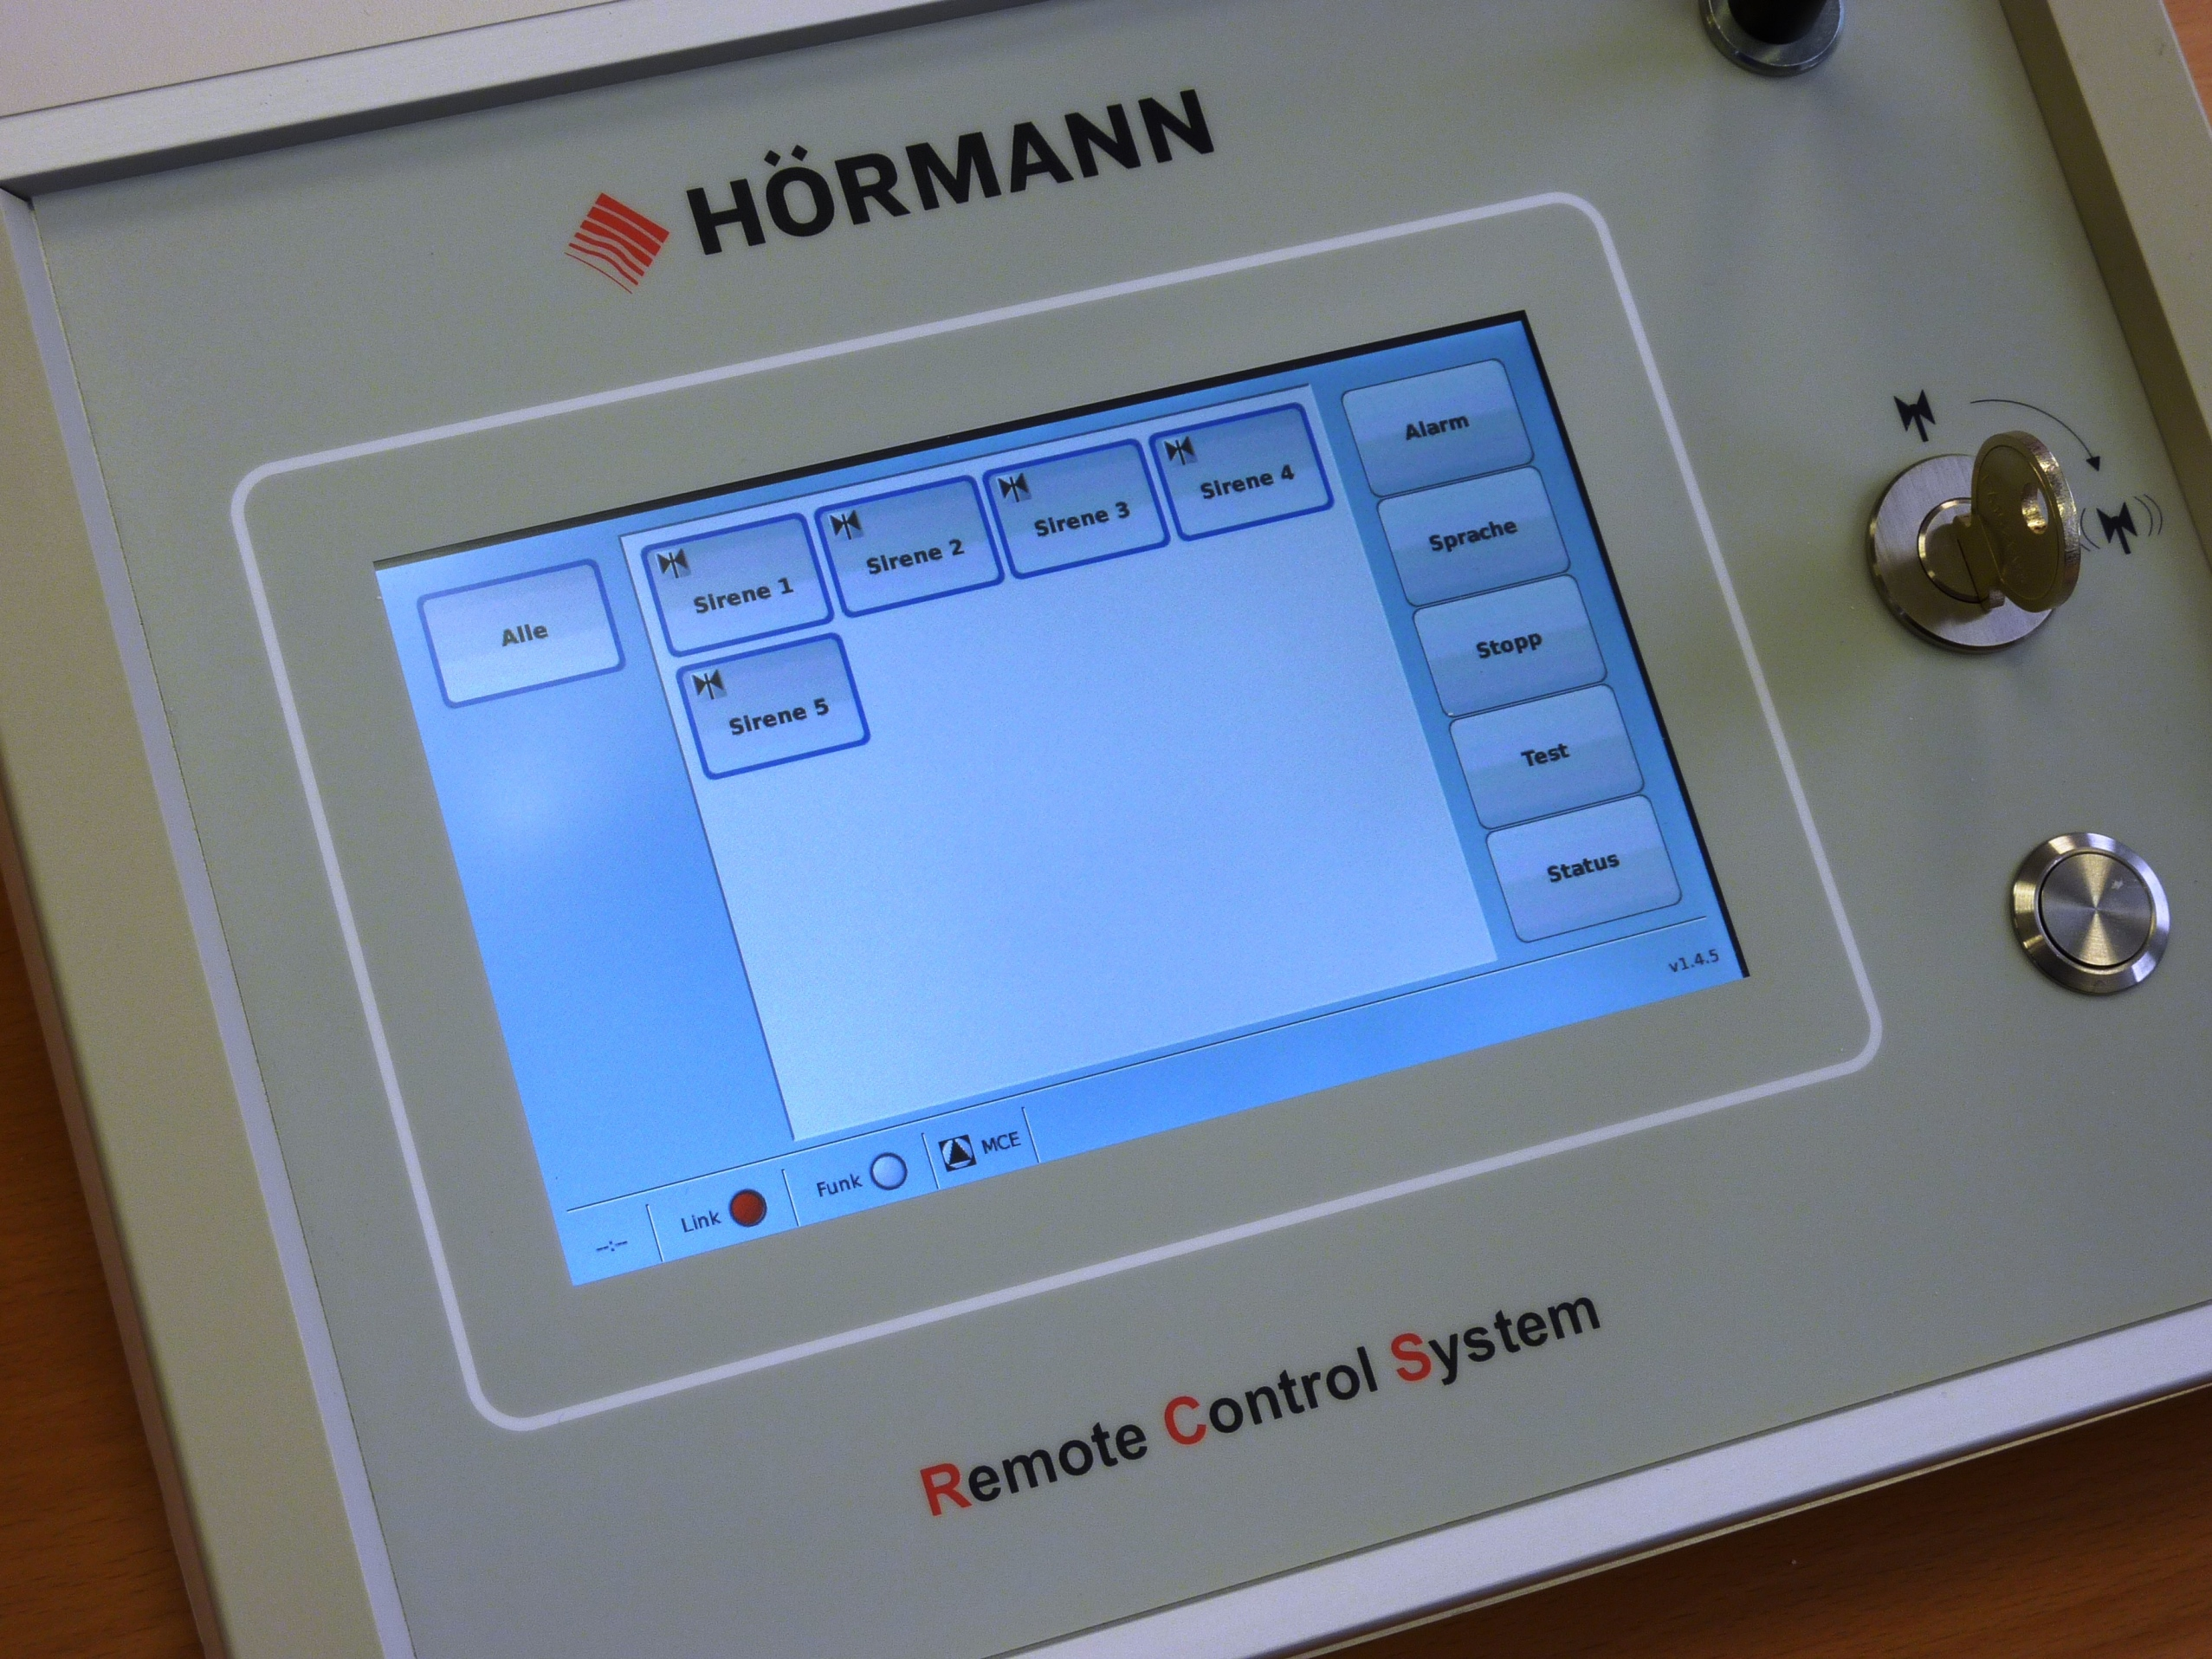 RCS siren control panel for warning systems